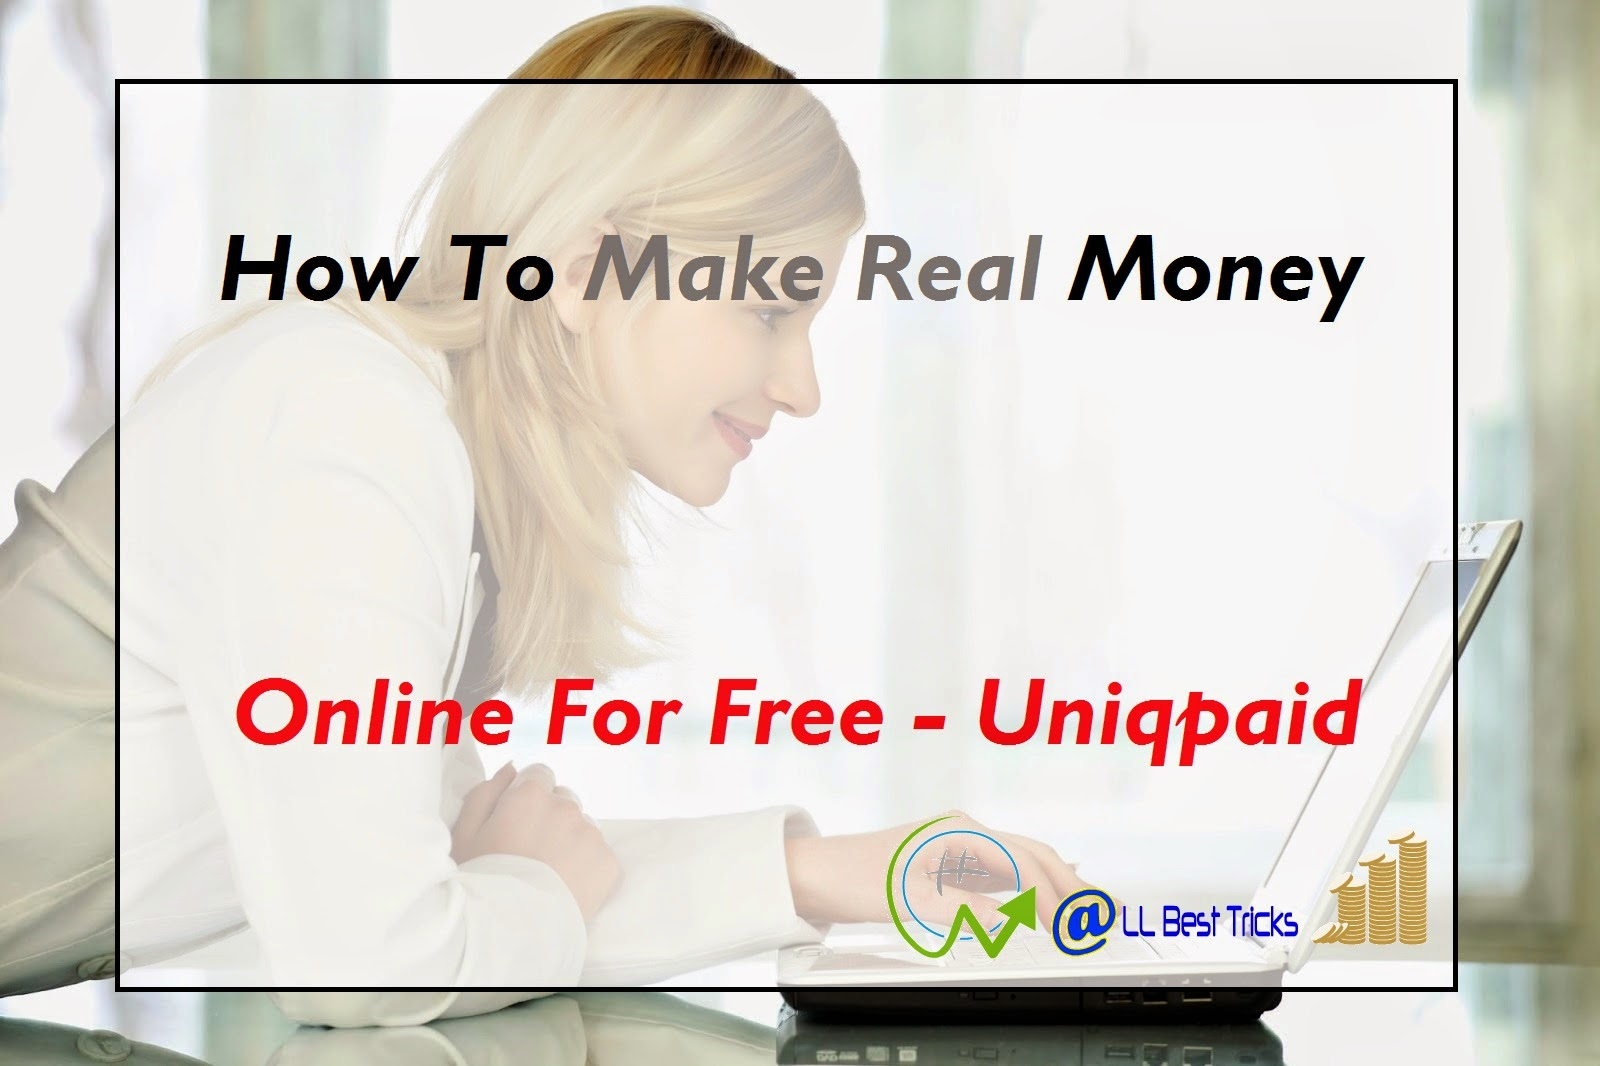 Best And Good Way To Make Money Online - Payment Proofs